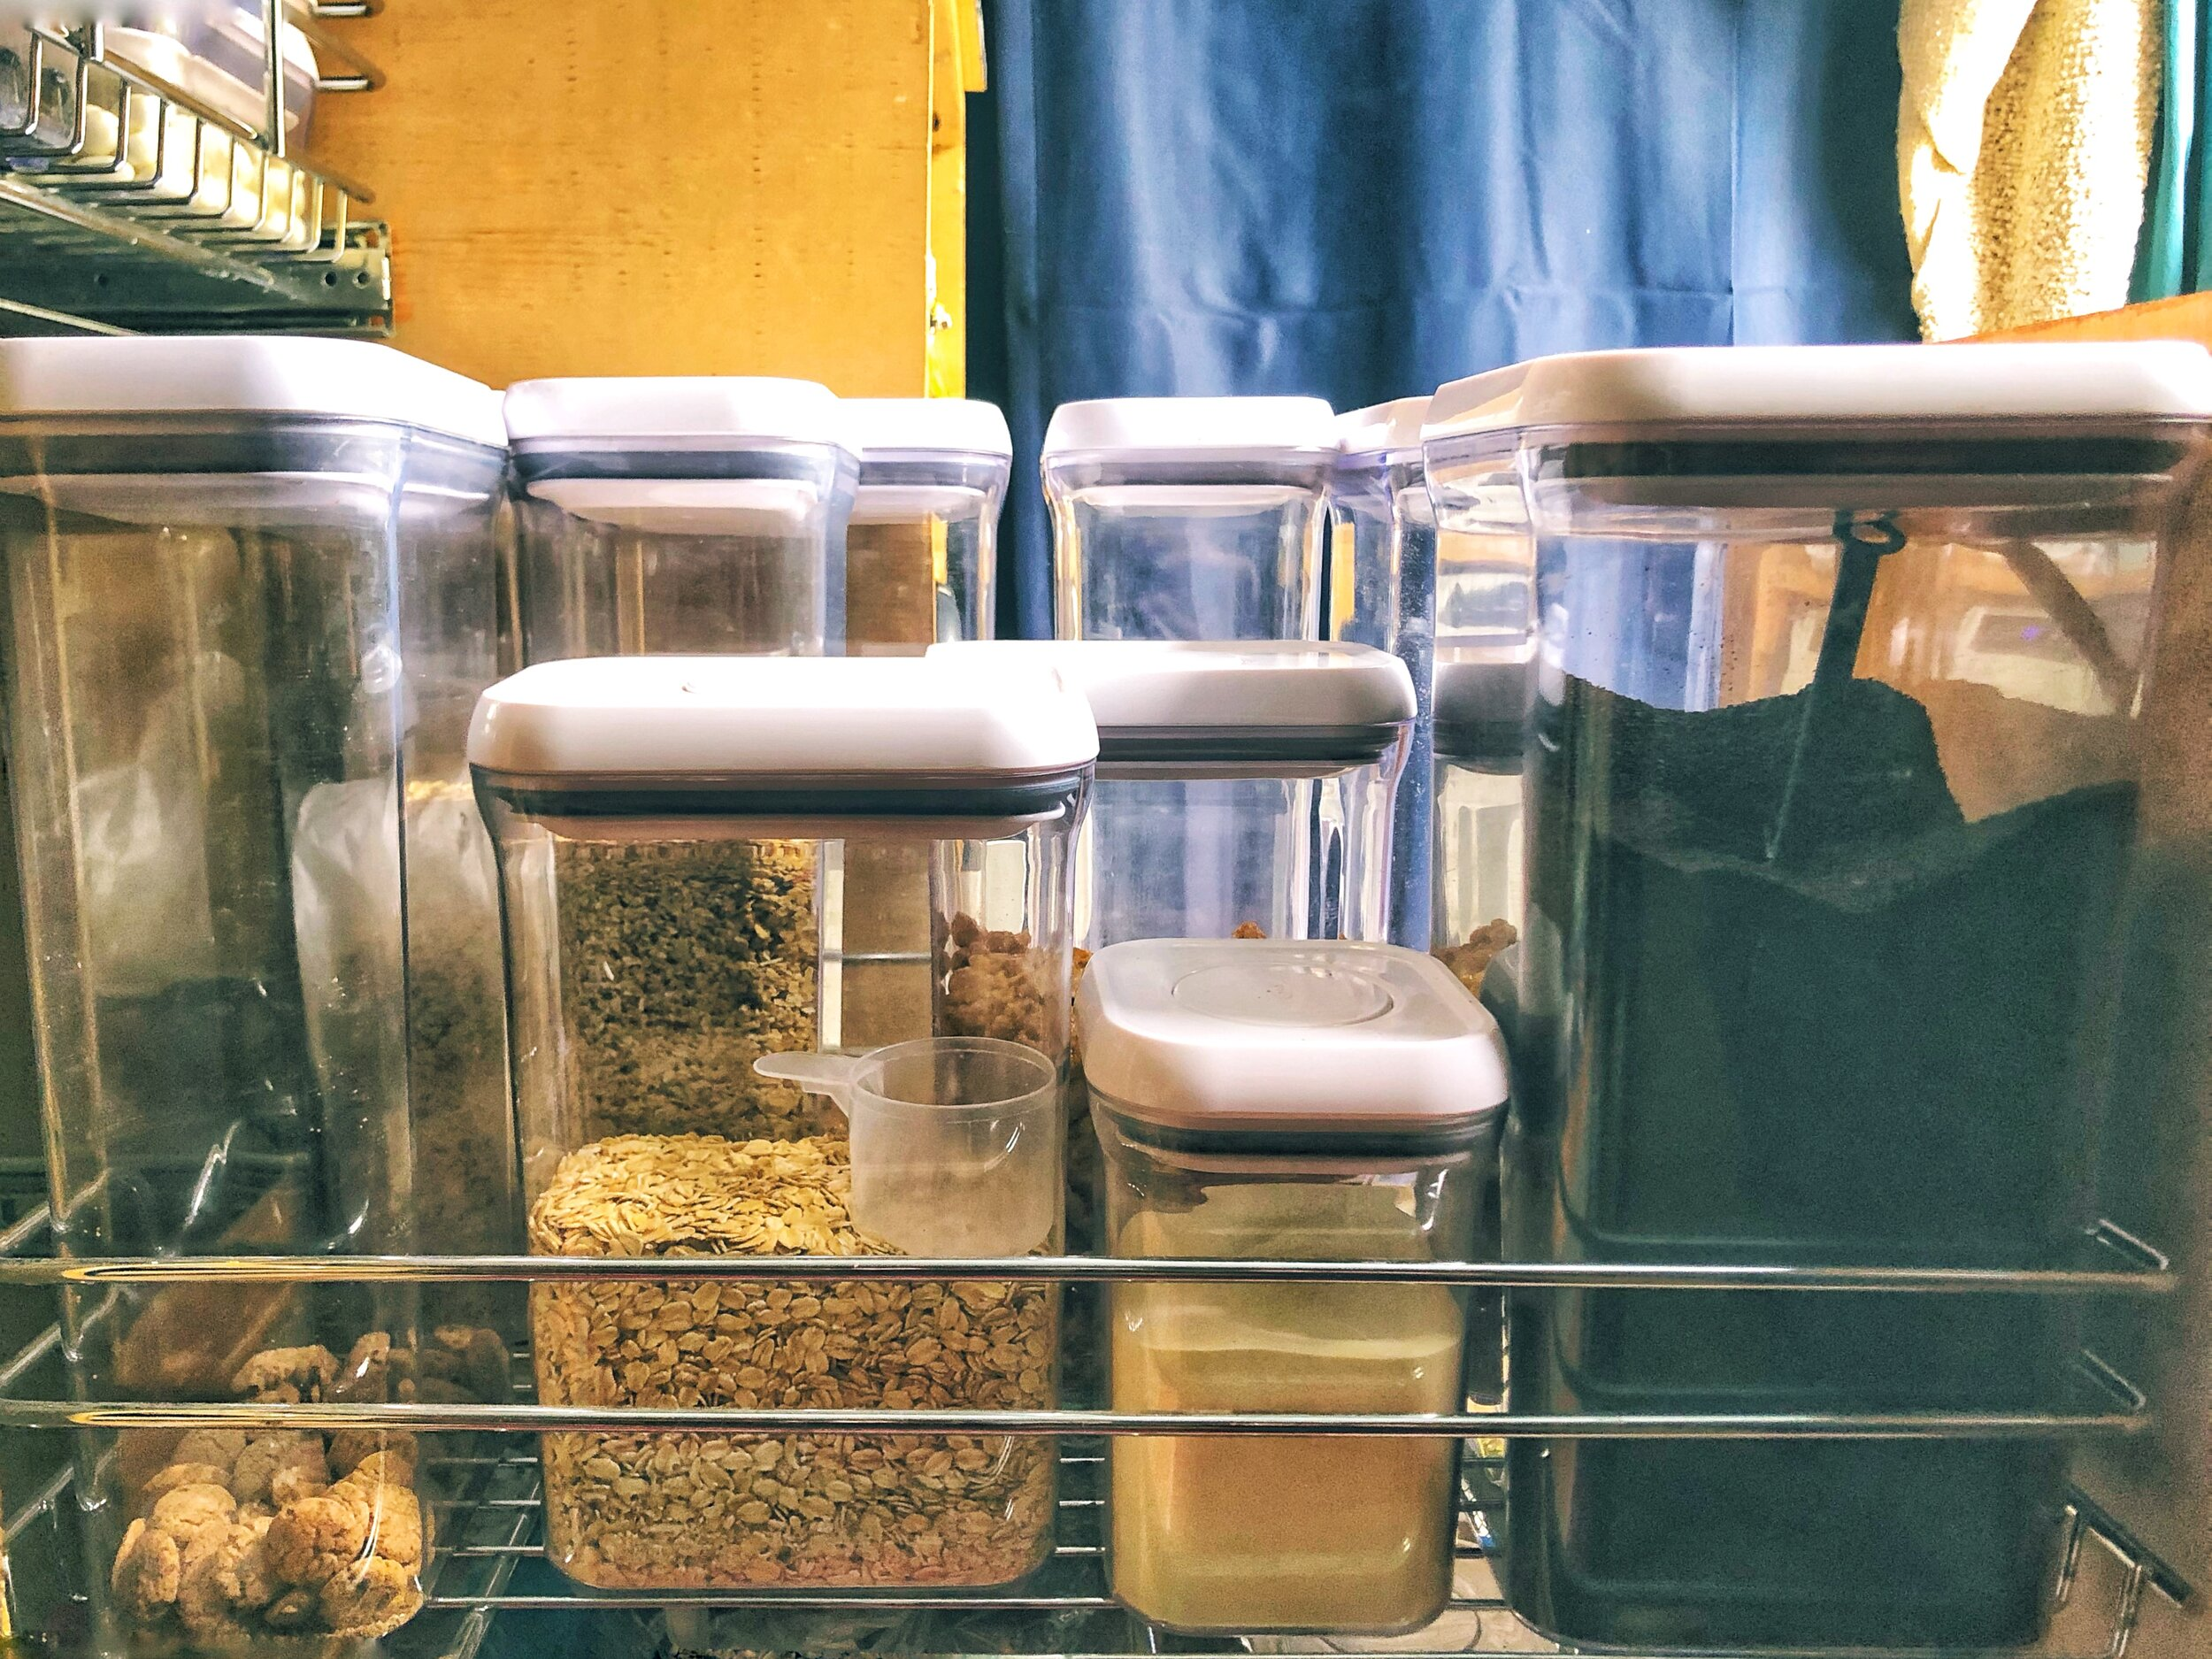 A bought-in-bulk pantry is a beautiful pantry, no matter the size of it.